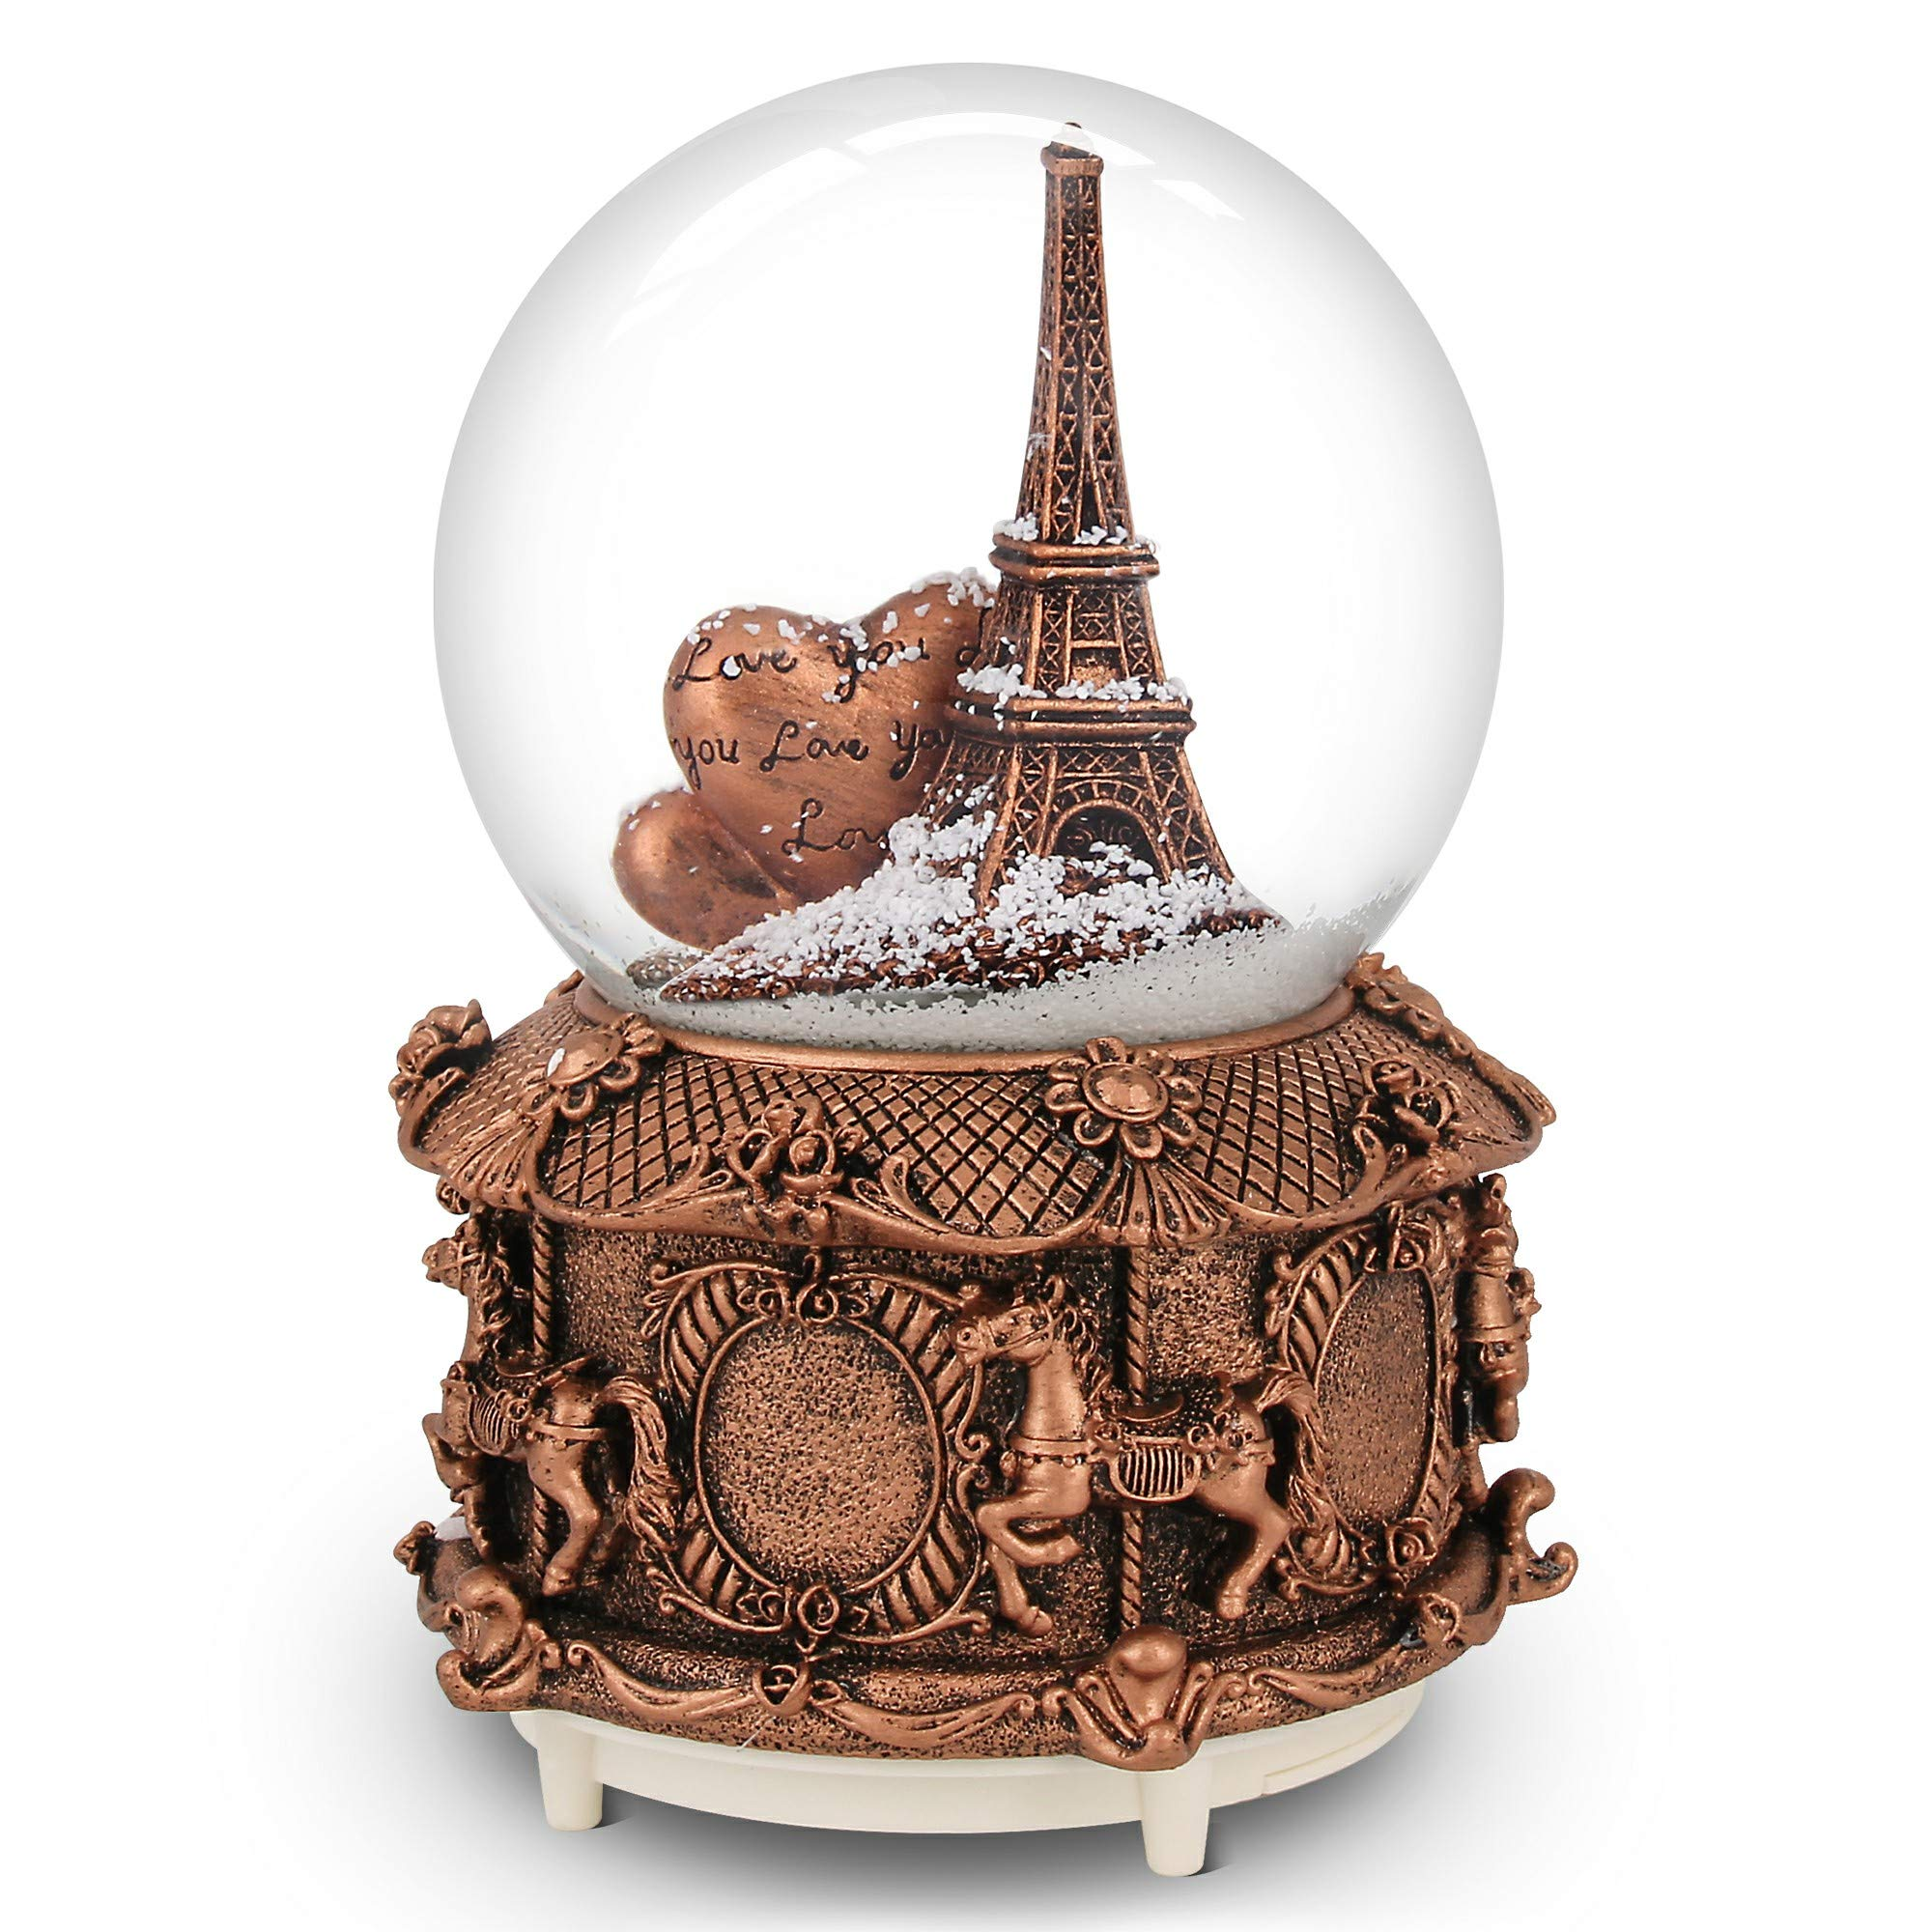 QTKJ Paris Snow Musical Globe with Color Changing LED Lights, Eiffel Tower Snow Globe with Merry-go-Round Base, 100mm 6'' Tall Souvenirs Collection ... (Gold) by QTKJ